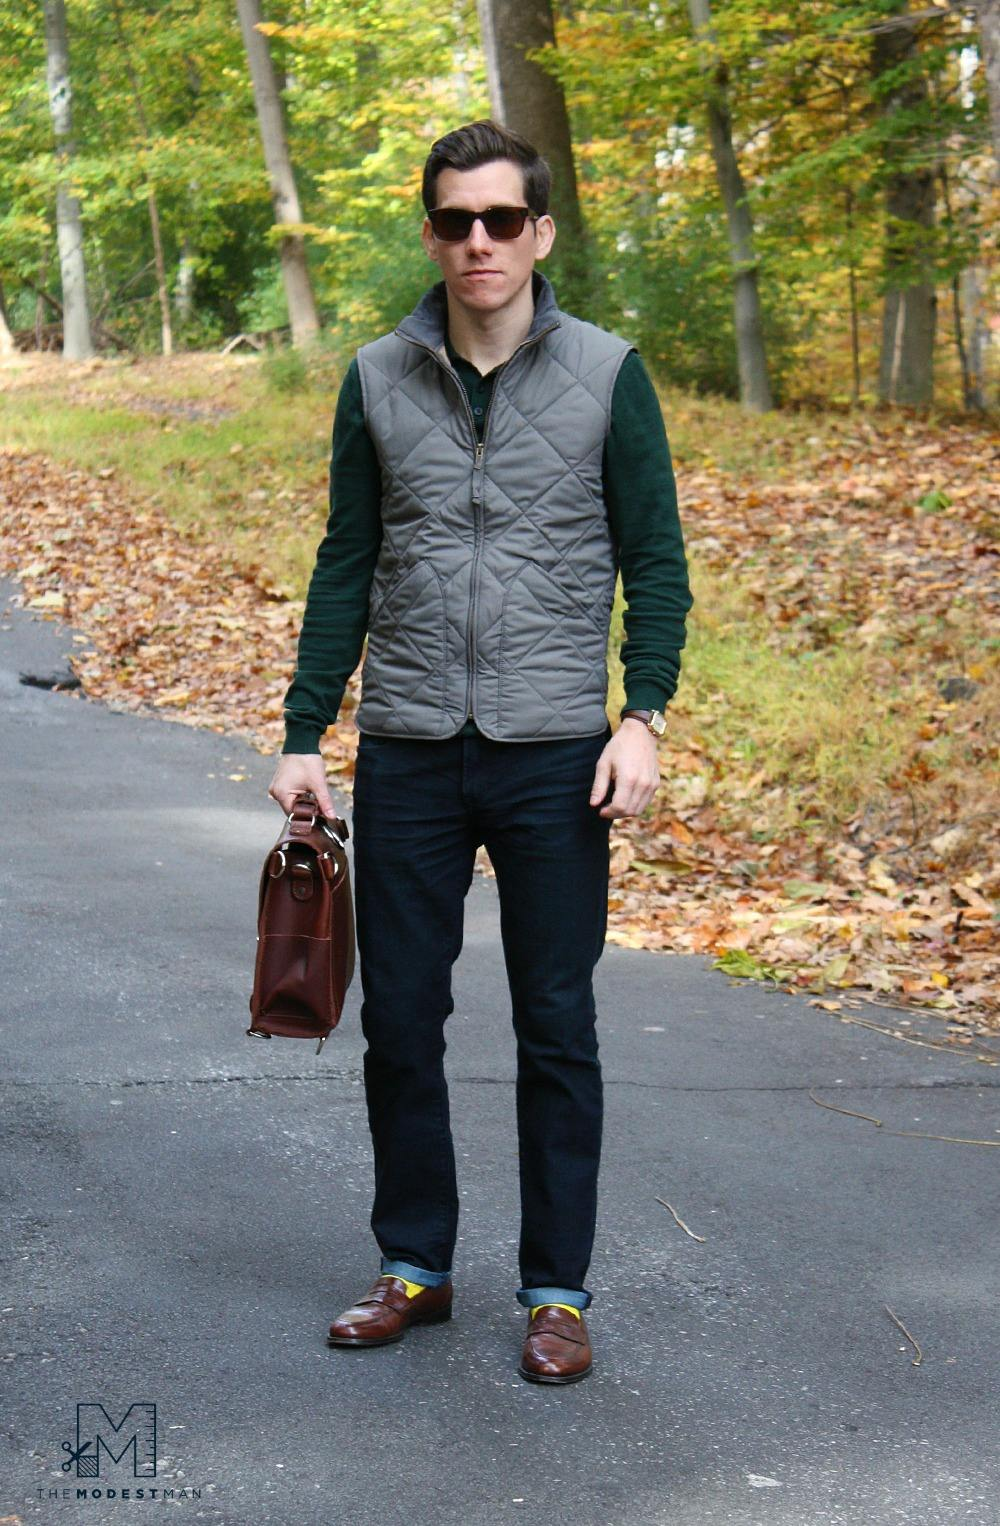 Grey Vest and Green Shirt | The Modest Man